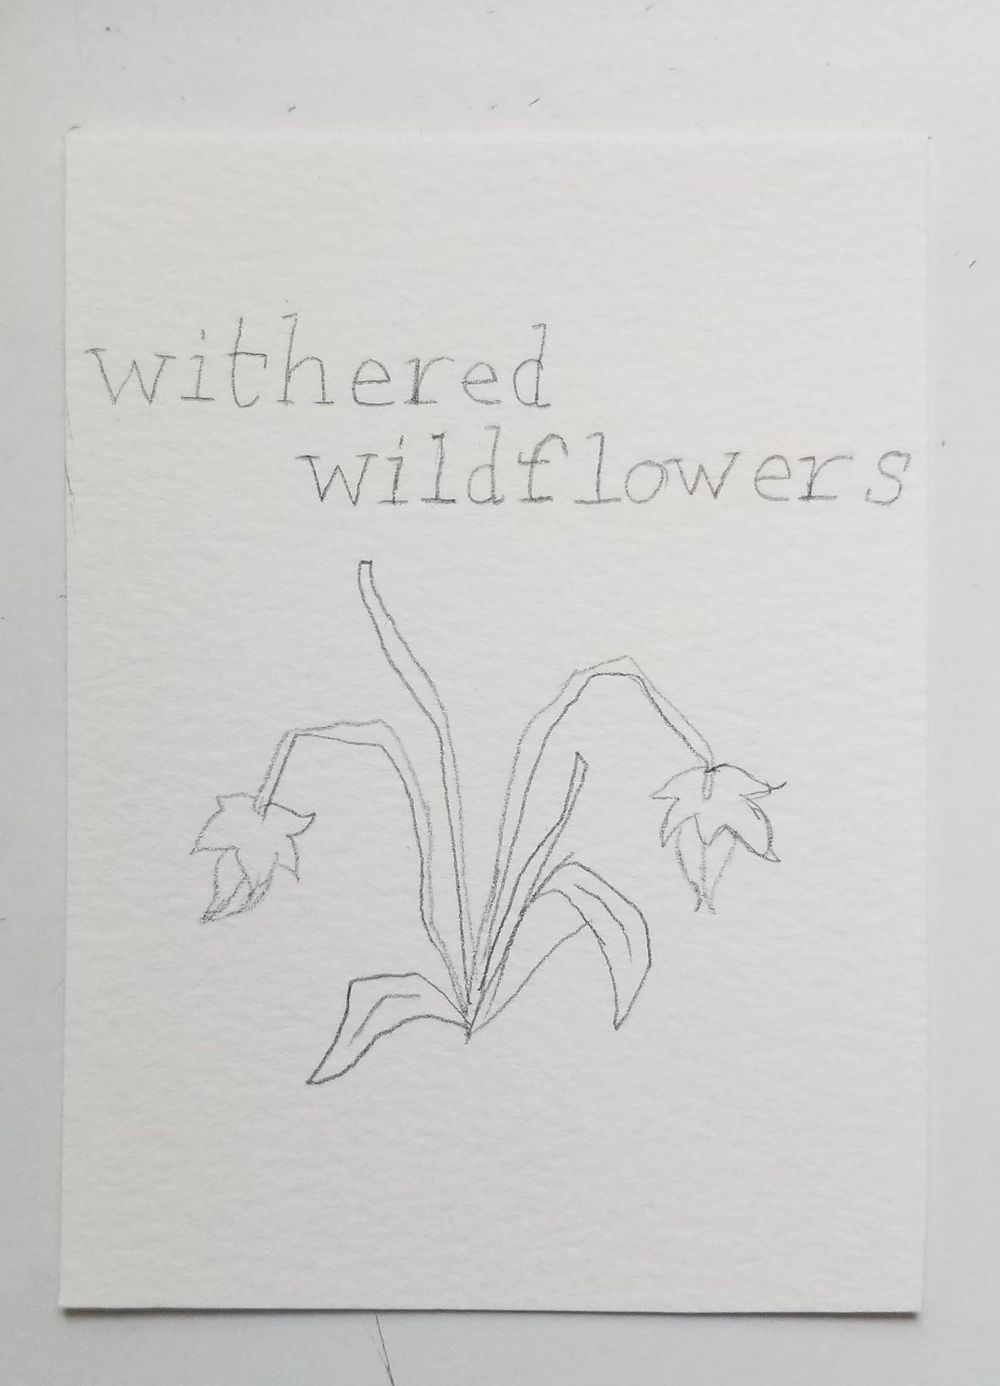 Withered Wildflowers - image 1 - student project